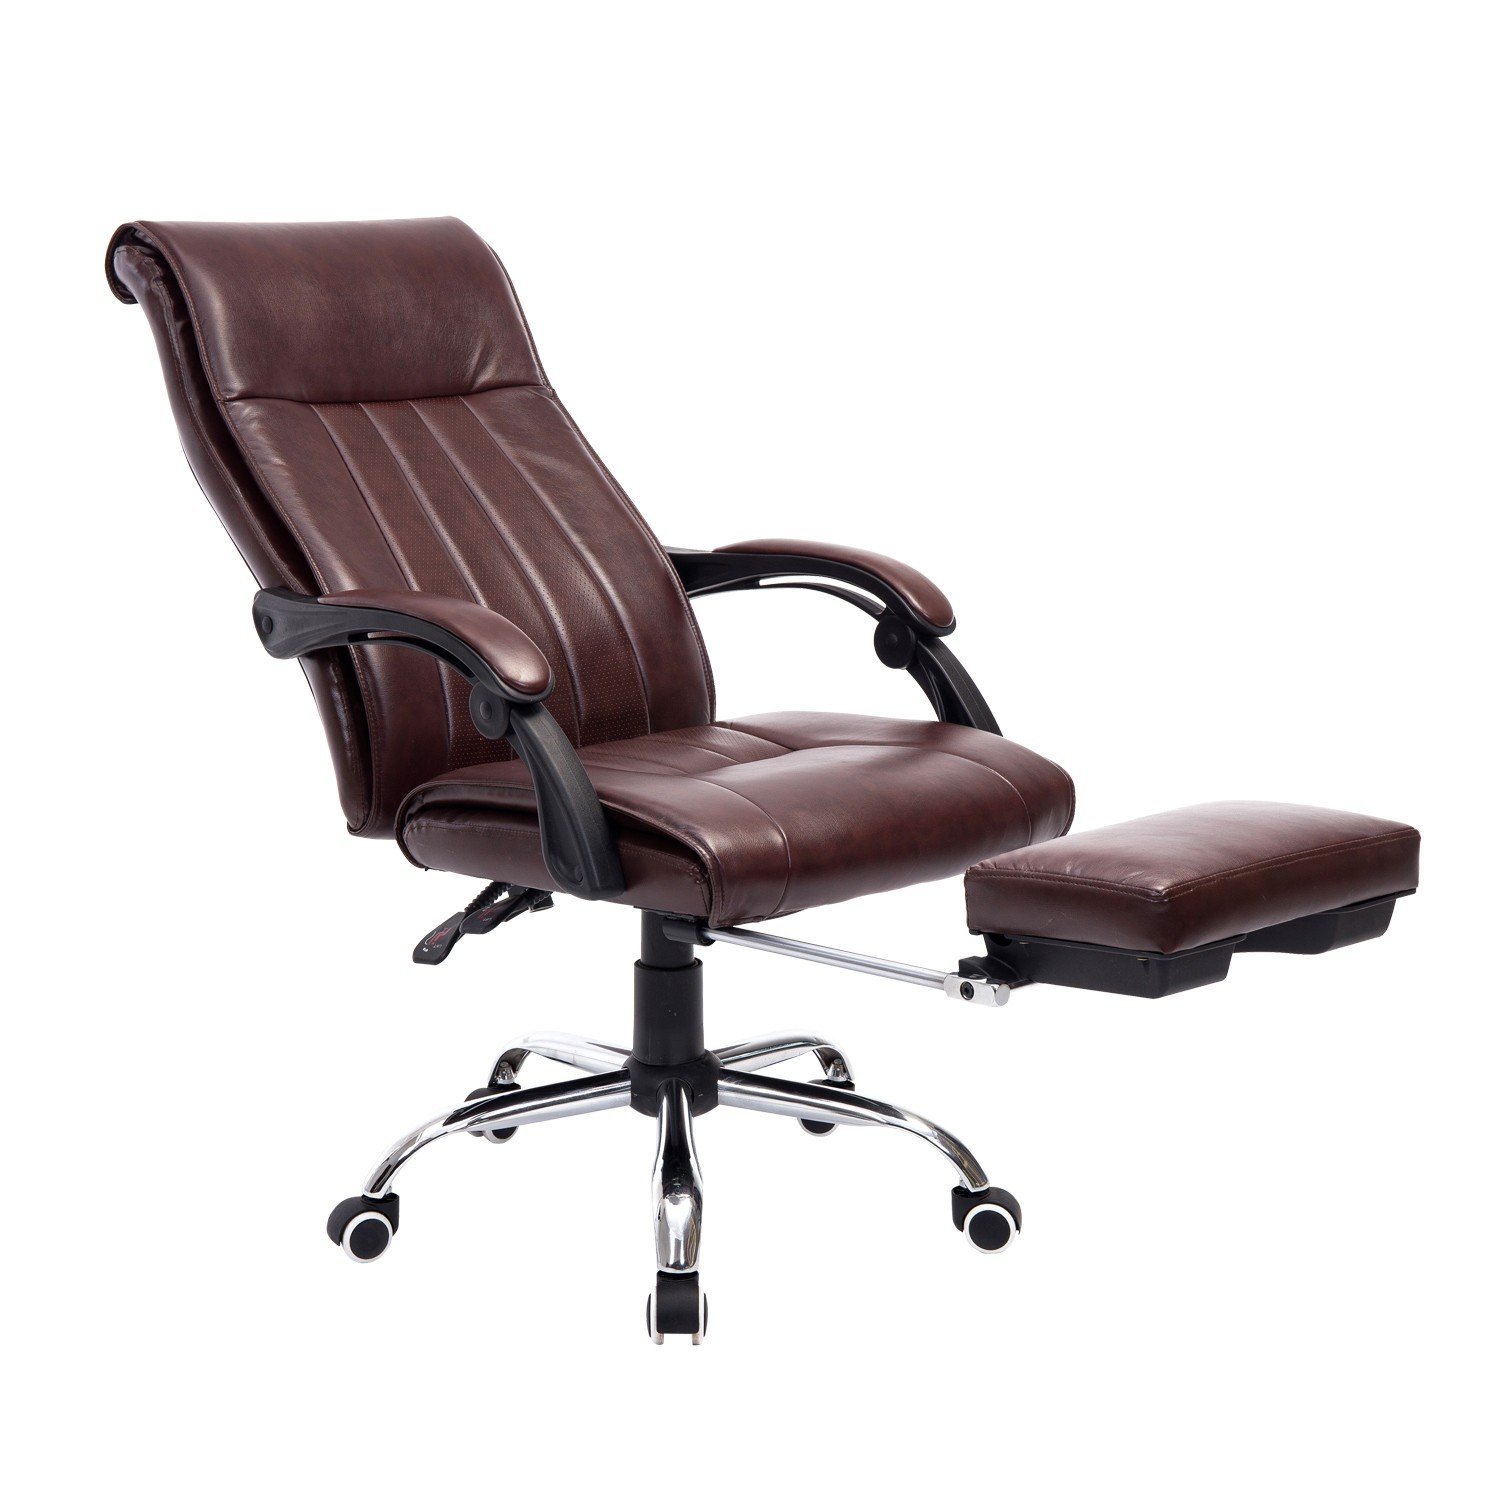 Joyous Footrest Reclining Office Chair Office Depot Reclining Office Chair Reclining Office Chair Reclining Adjustable Swivel Office Chair Back Pain houzz 01 Reclining Office Chair